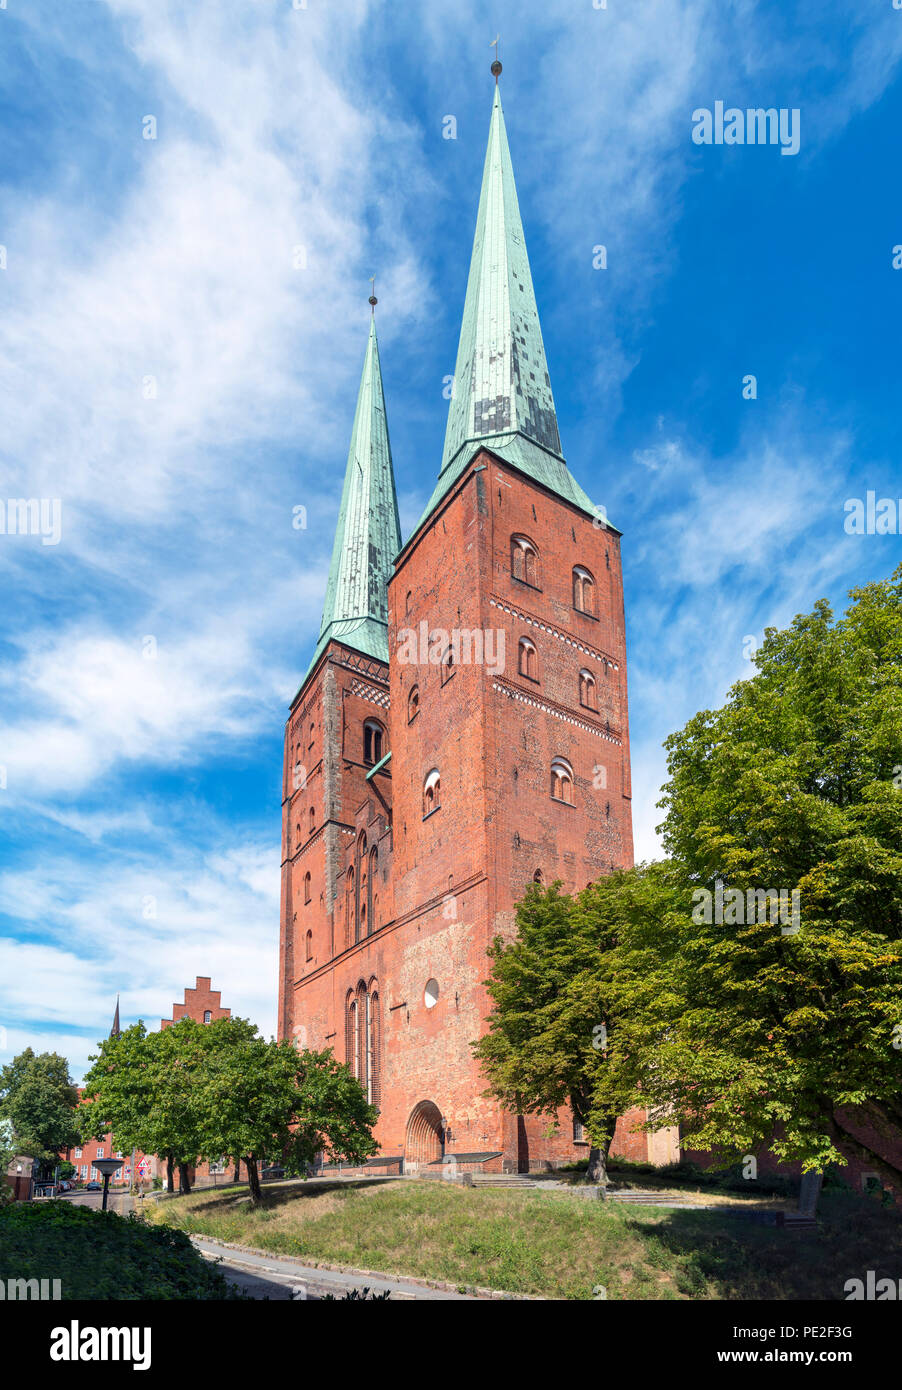 Lubeck Cathedral (Lübecker Dom), Lubeck, Schleswig-Holstein, Germany - Stock Image